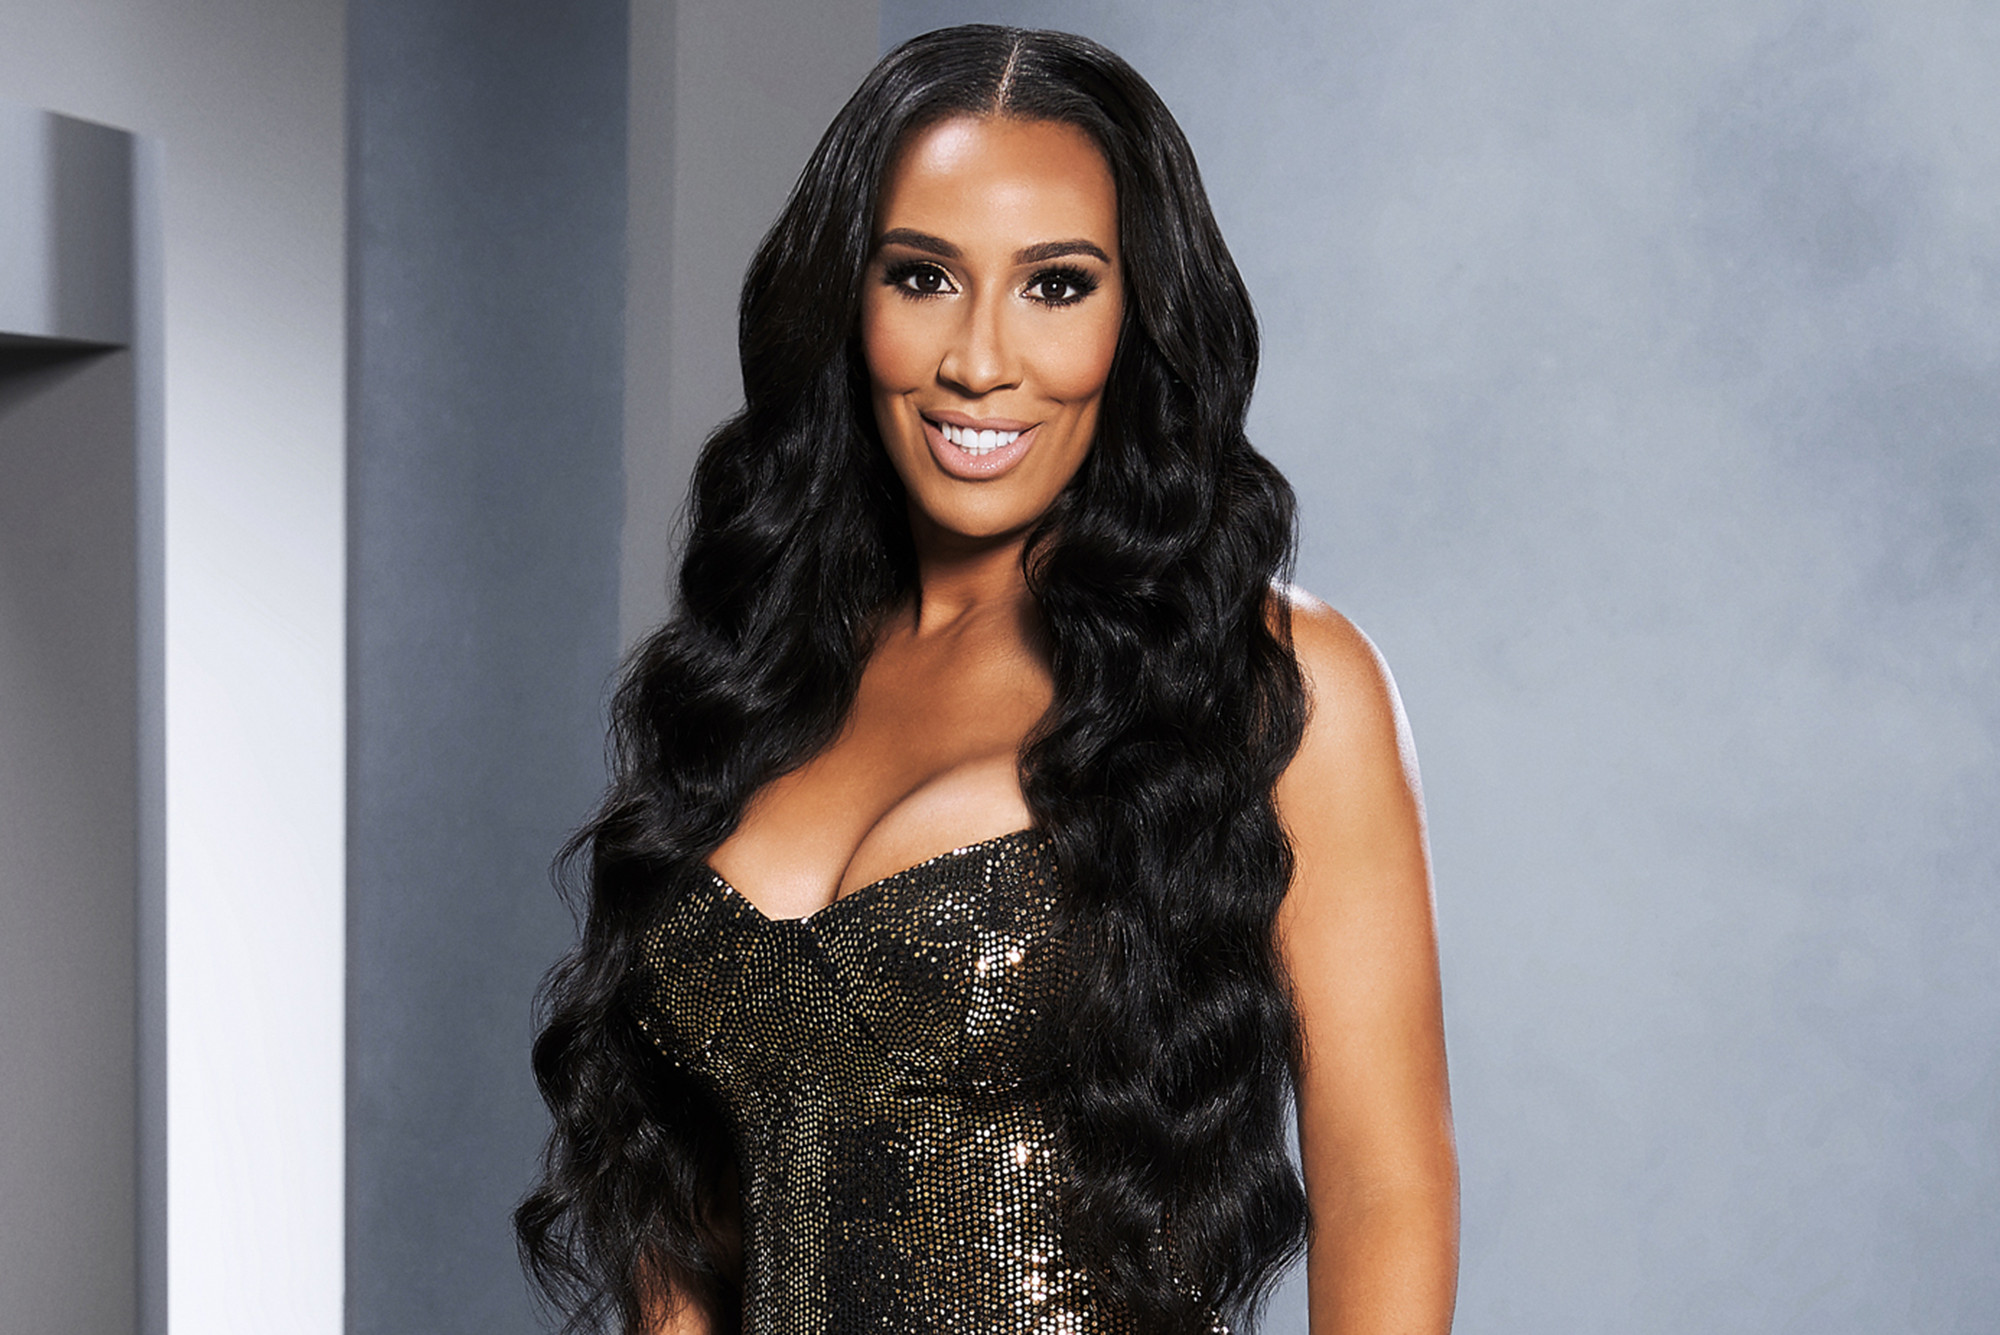 Newest 'RHOA' cast member ready to show off her style